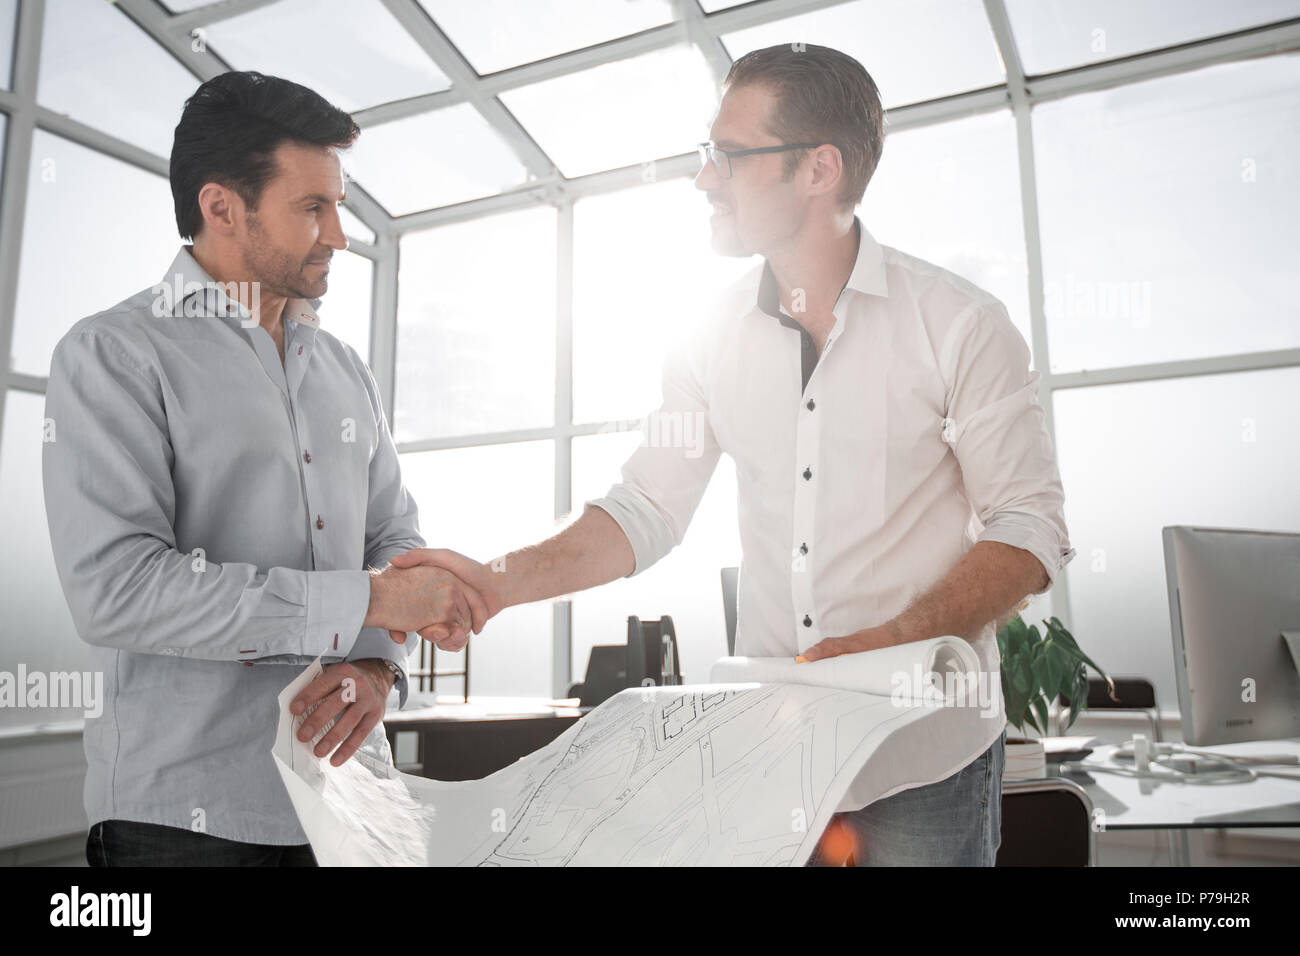 architect and client handshake in the office - Stock Image